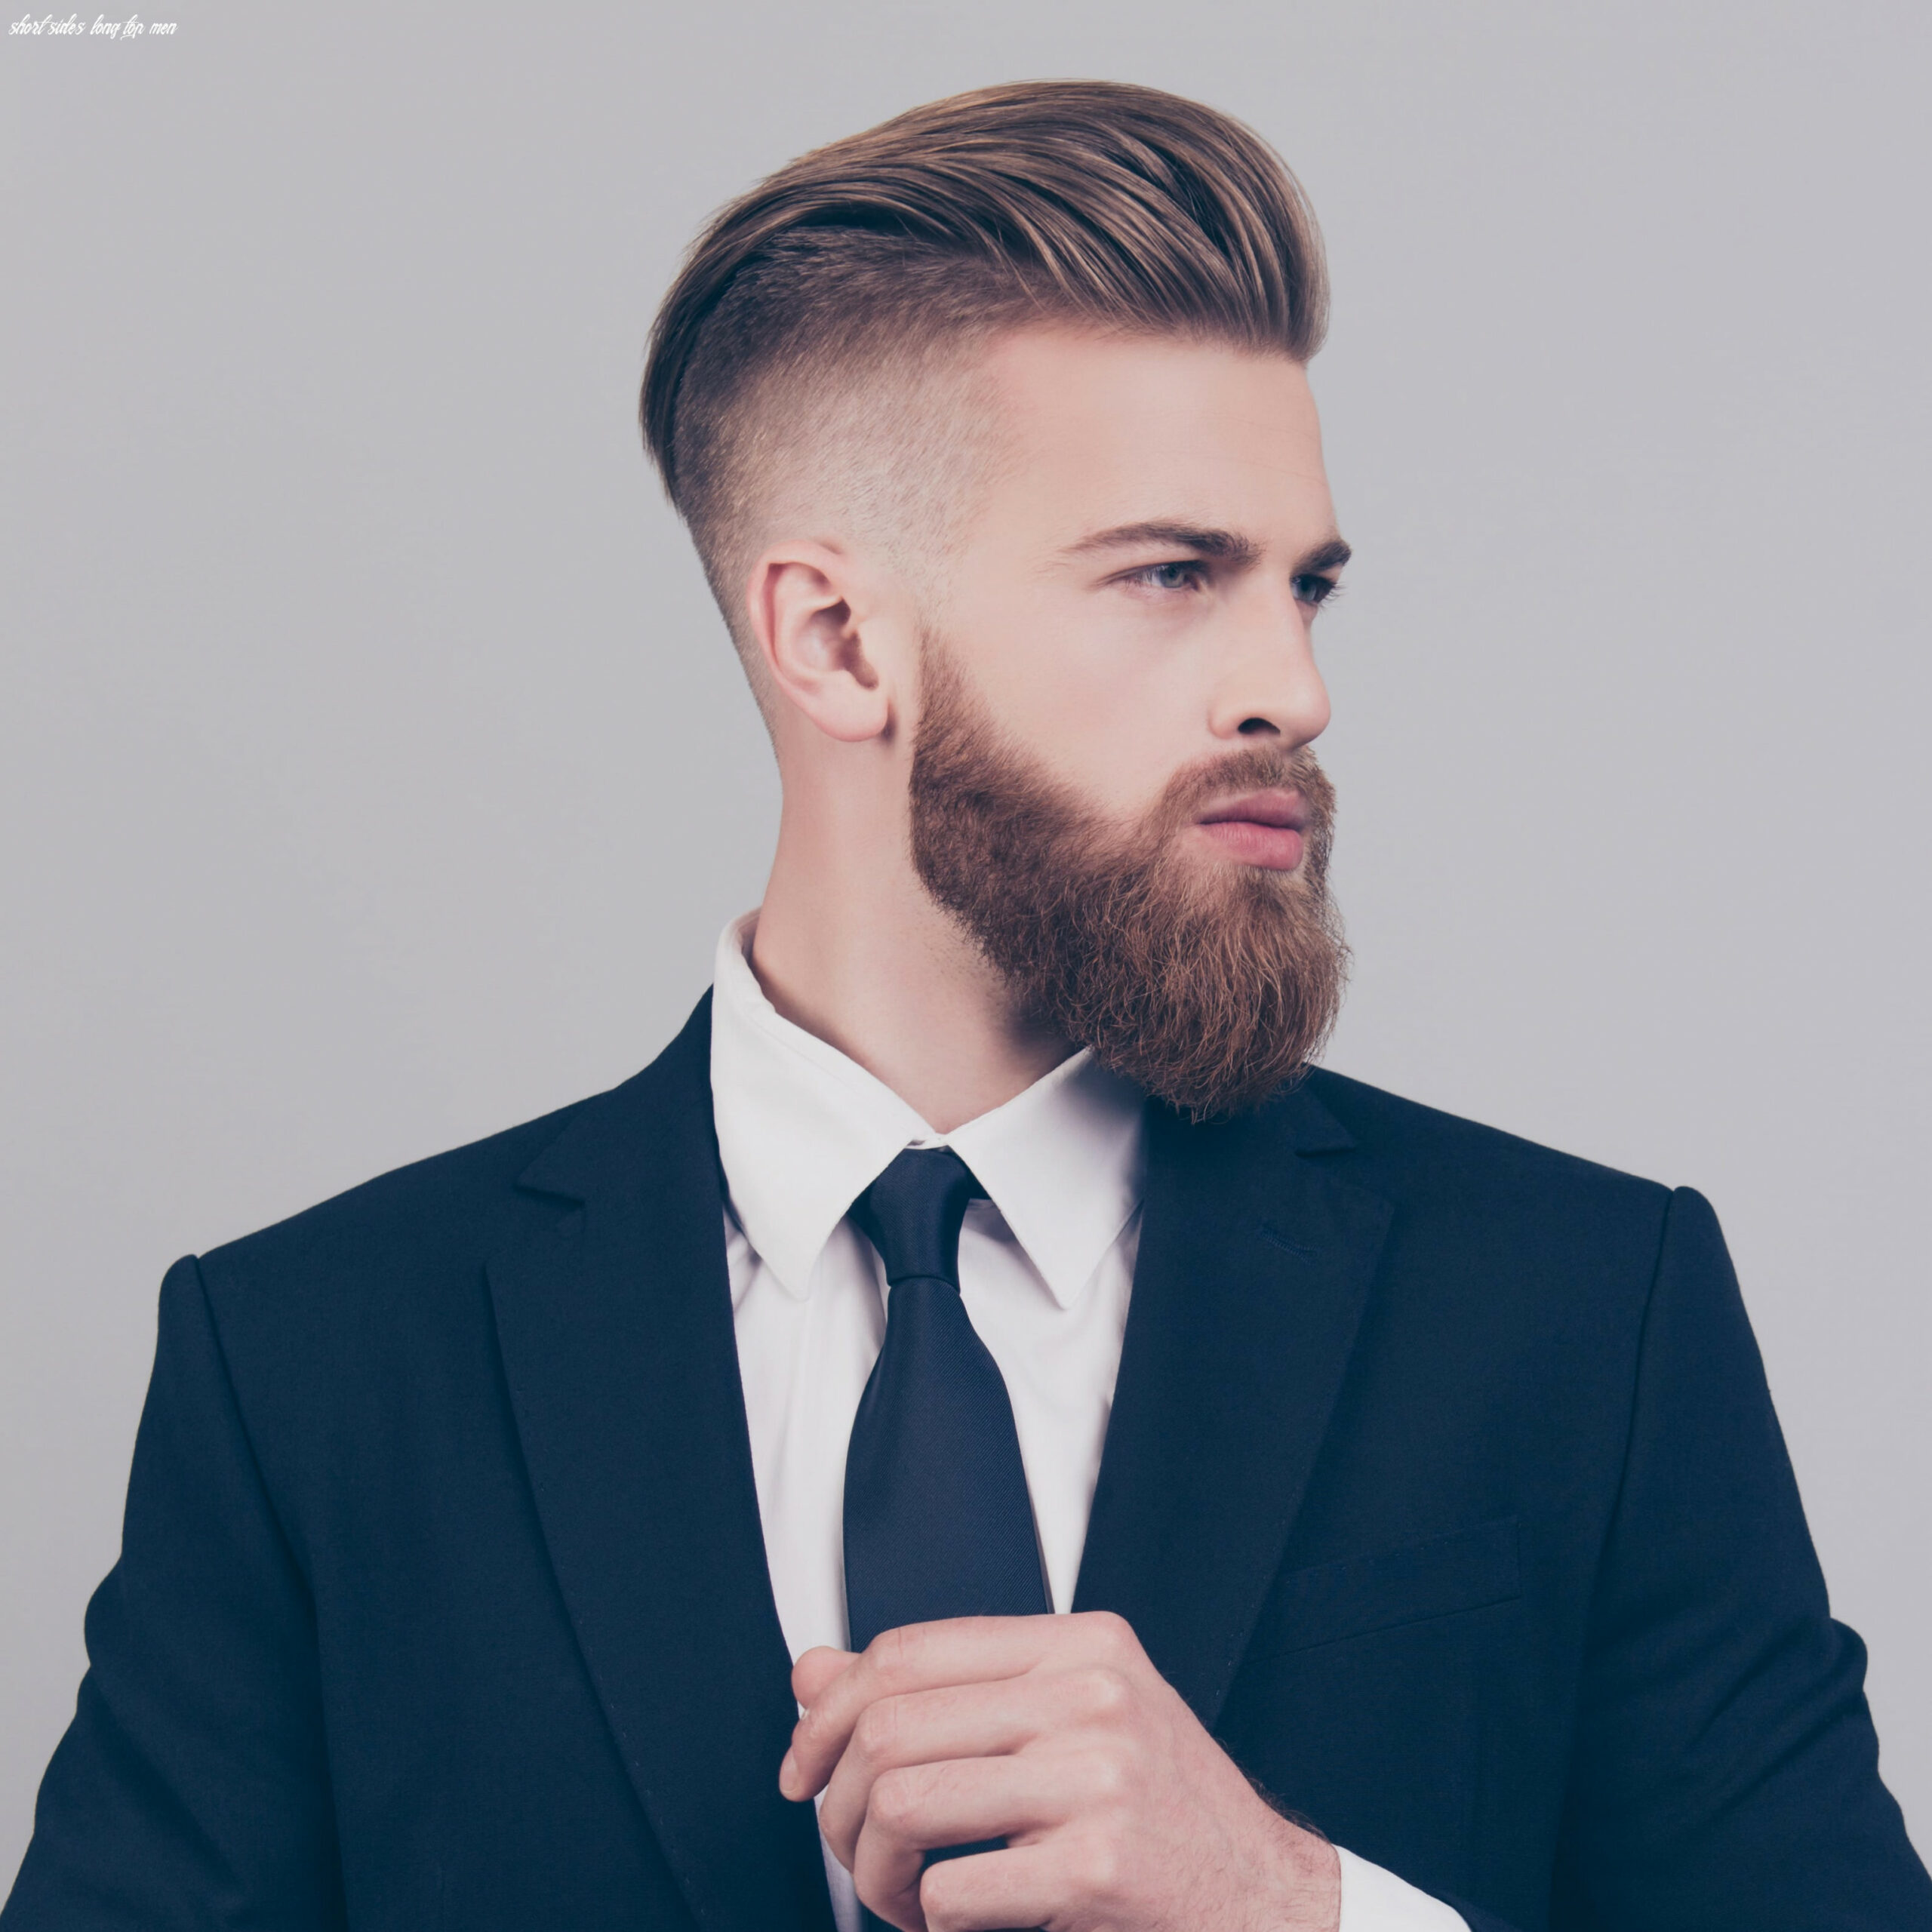 The best of both worlds: short sides & long top | haircut inspiration short sides long top men